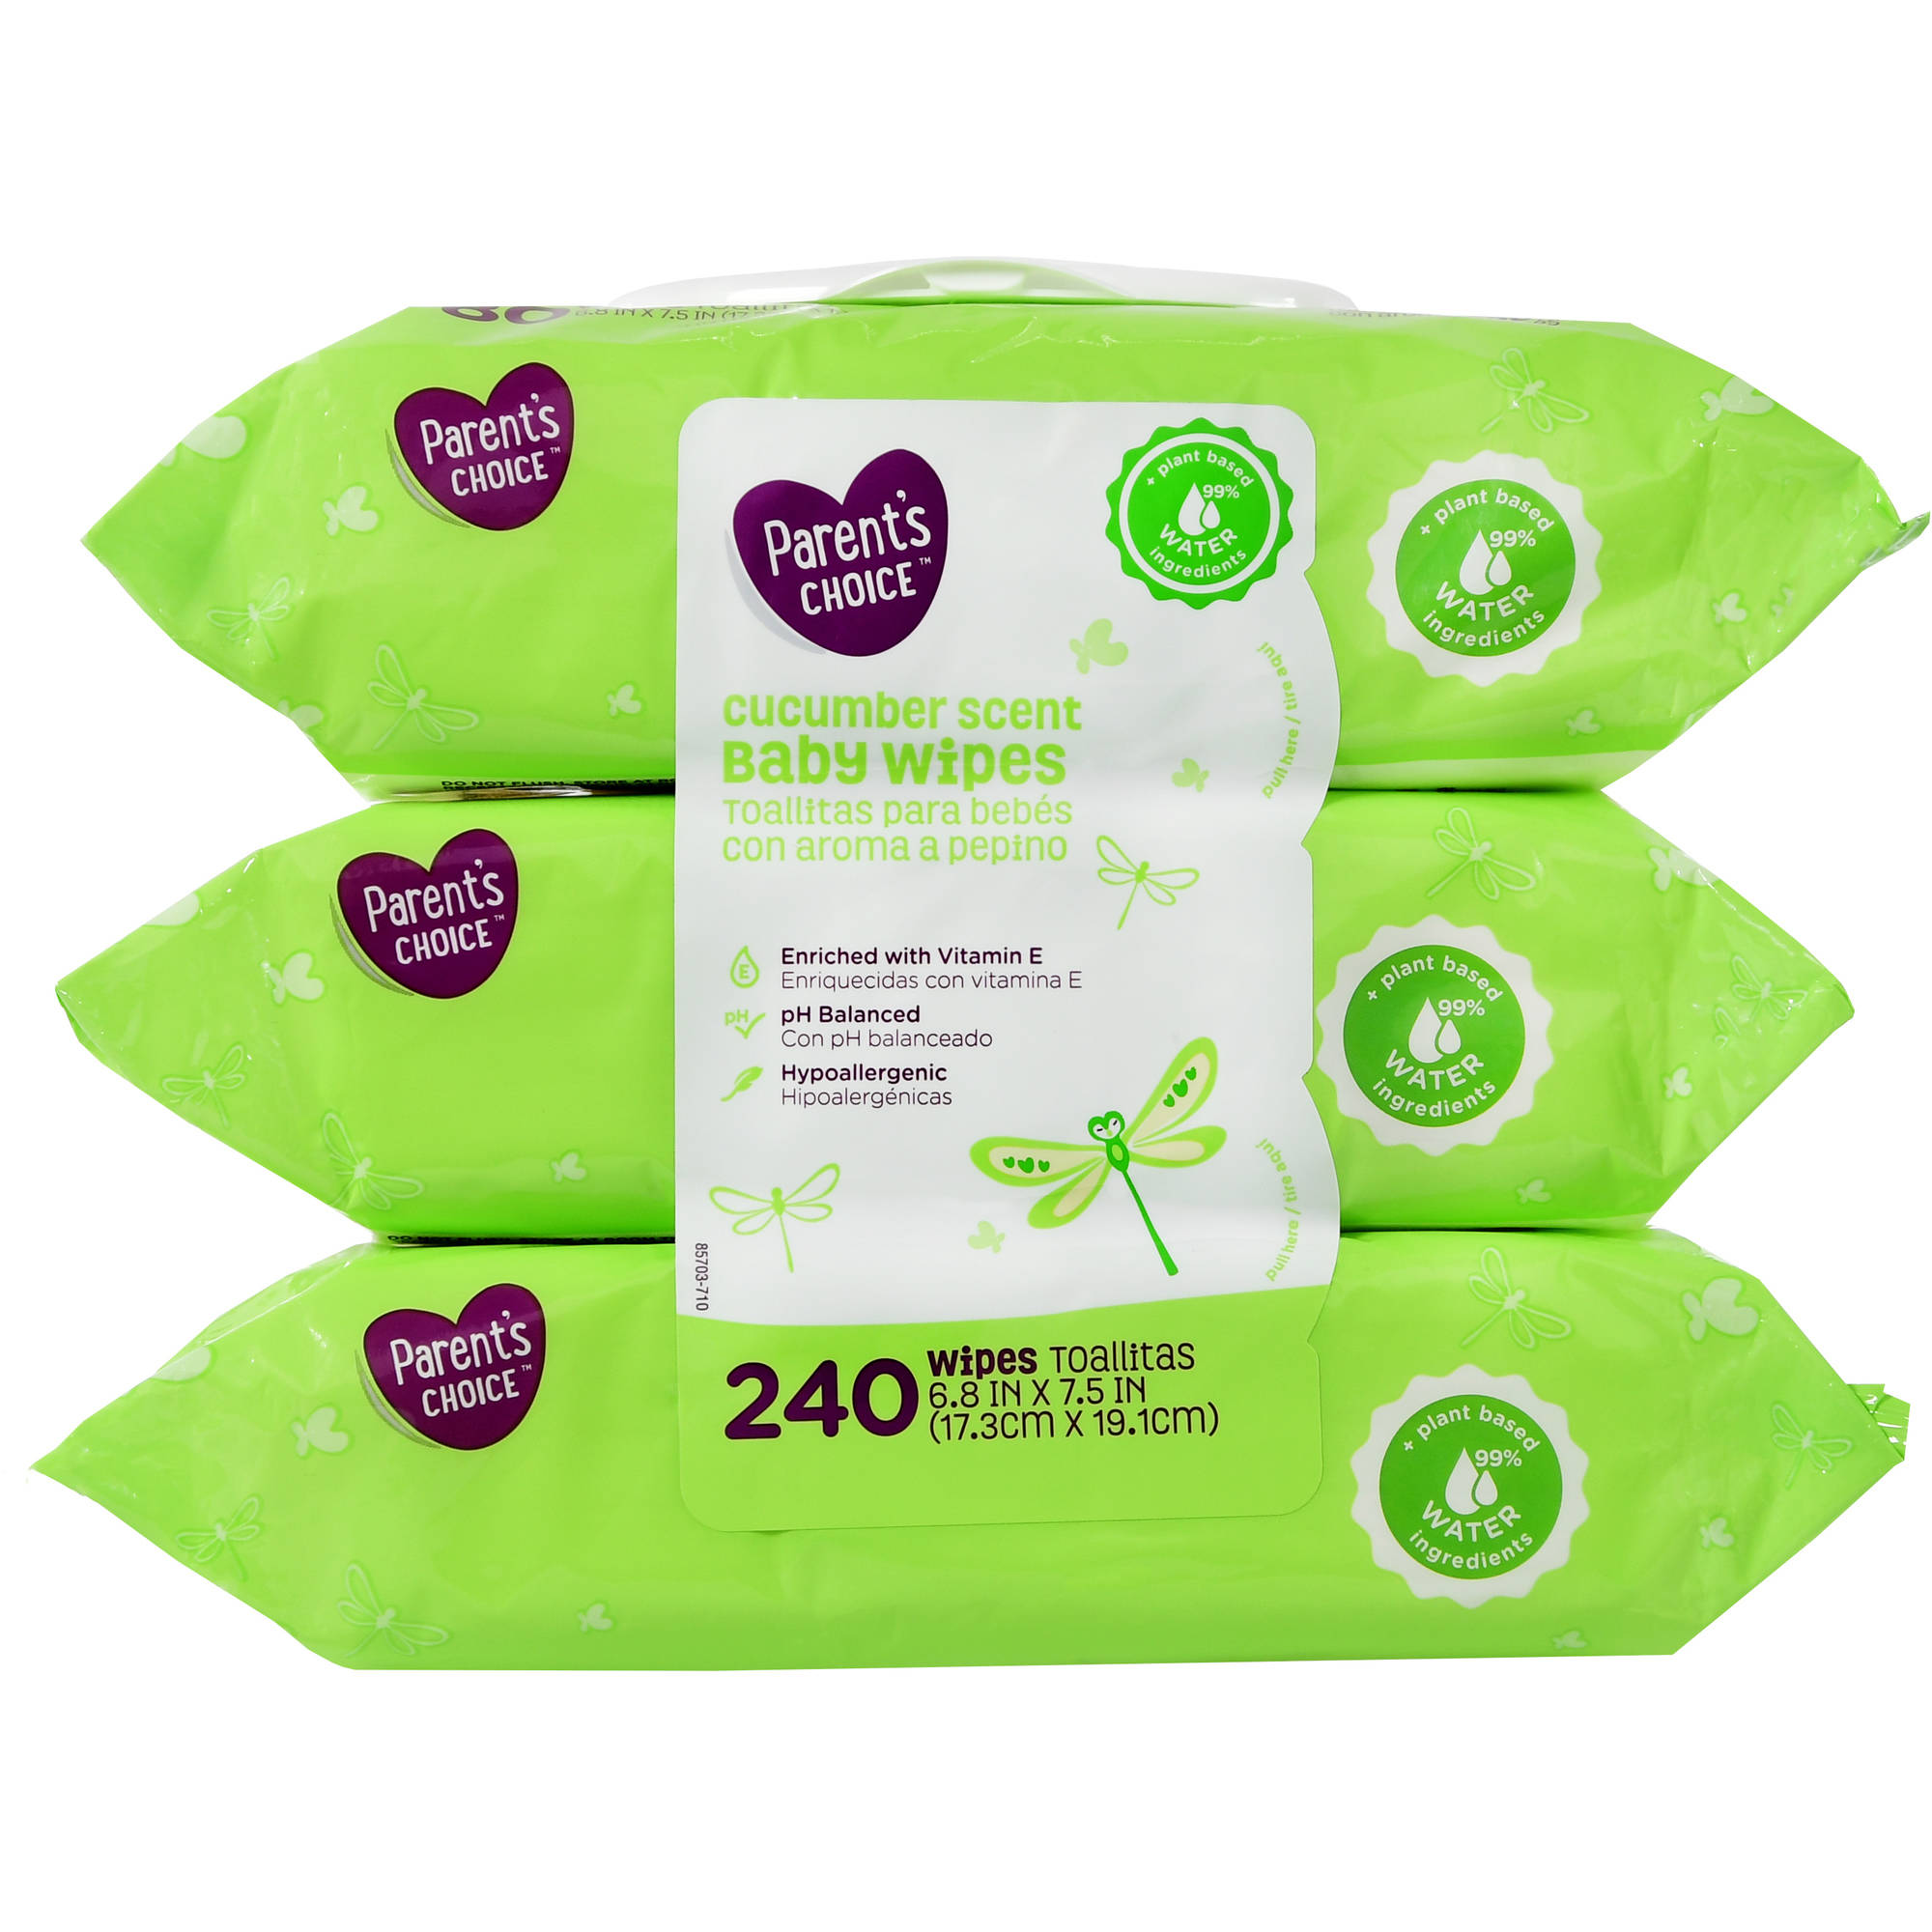 Parent's Choice Baby Wipes, Cucumber Scent, 3 packs of 80 (240 ct)